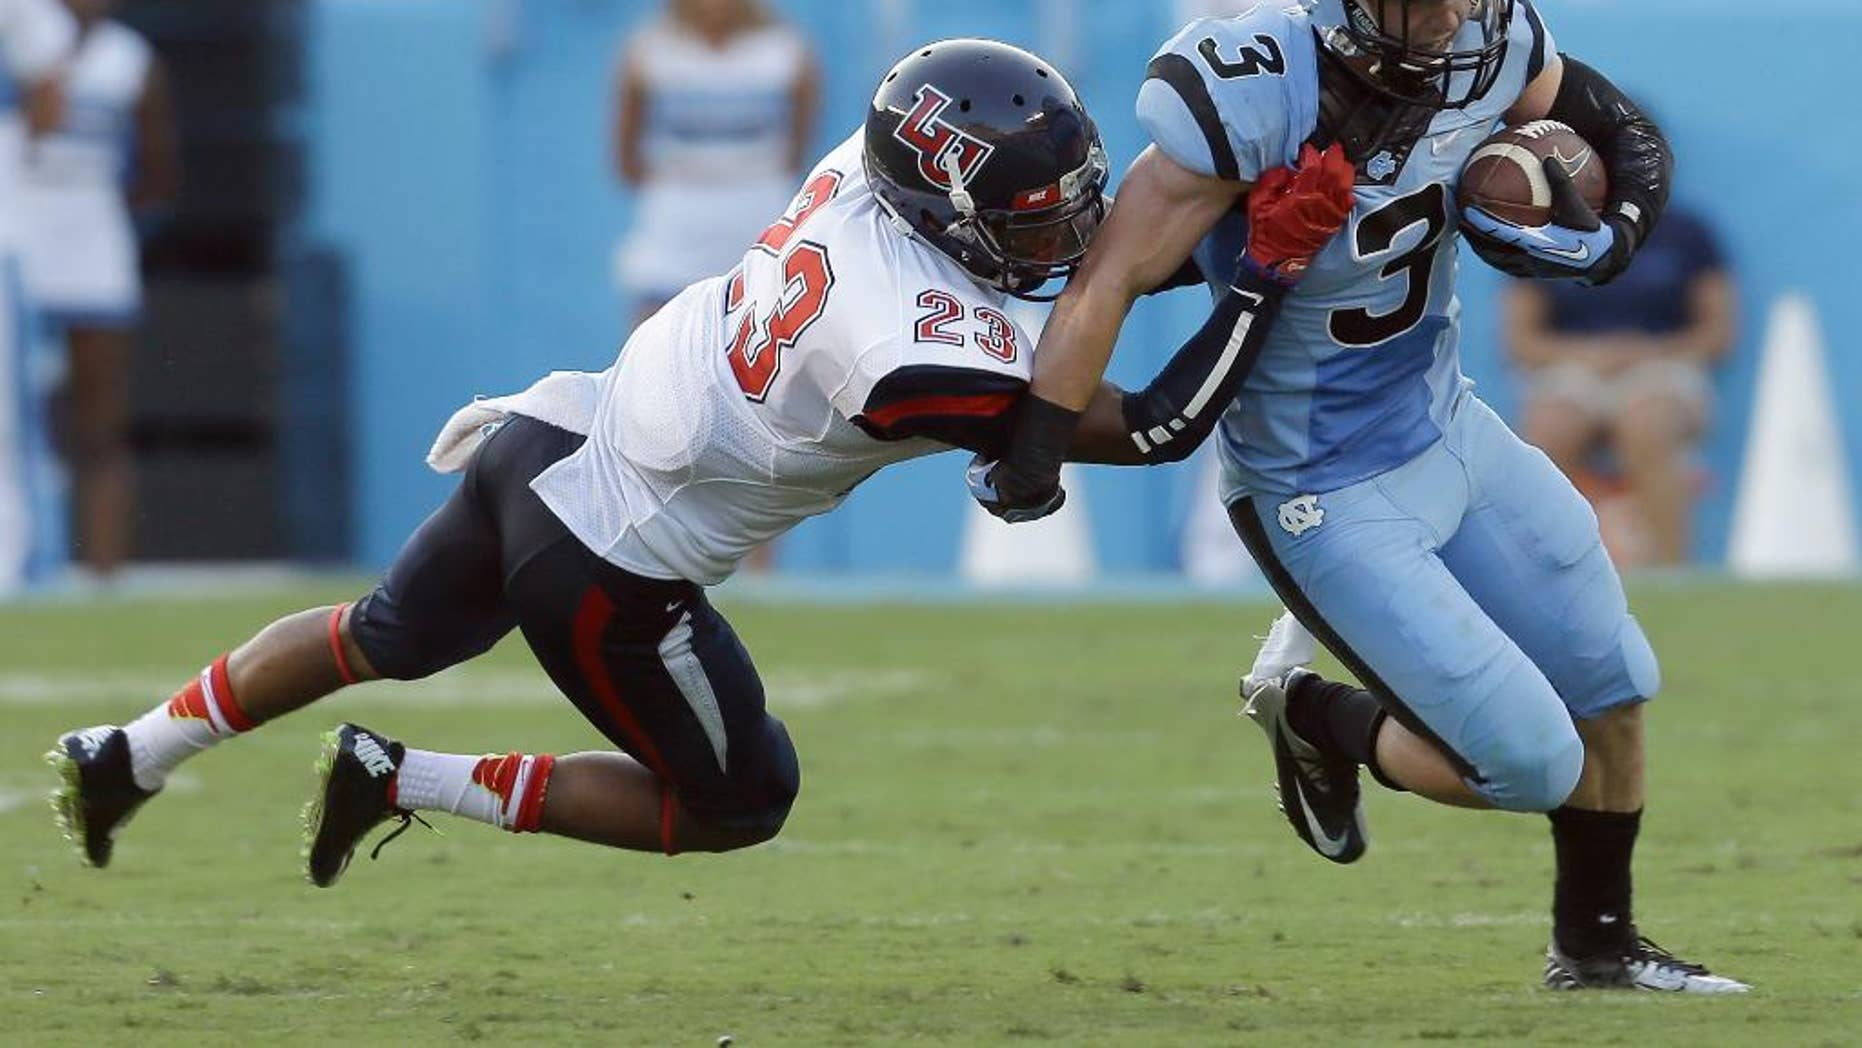 North Carolina's Ryan Switzer (3) runs the ball as Liberty's Justin Guillory (23) moves in to make the tackle during the first half of an NCAA college football game in Chapel Hill, N.C., Saturday, Aug. 30, 2014. (AP Photo/Gerry Broome)